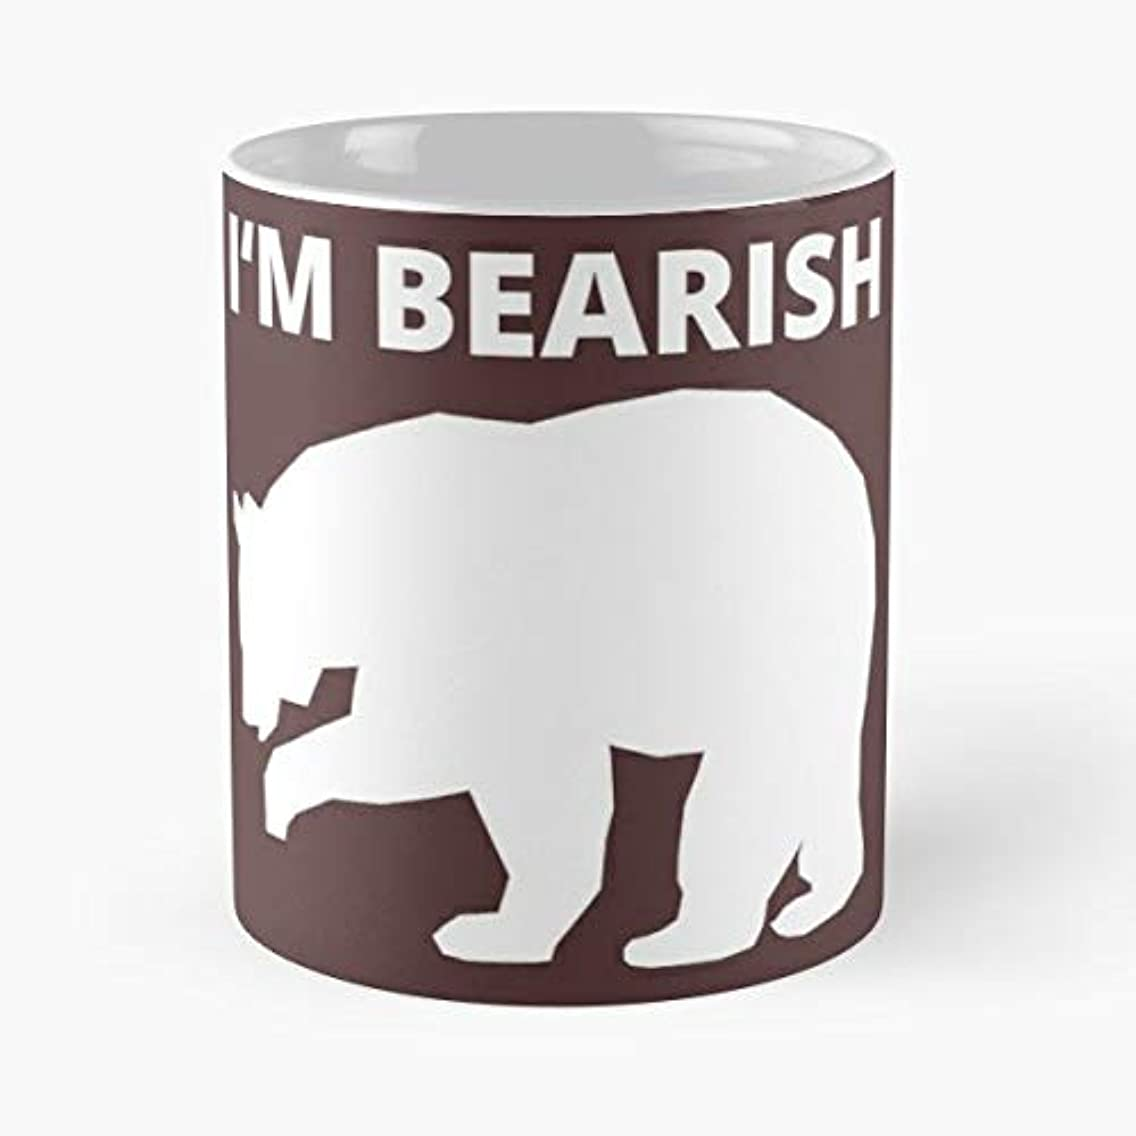 Stock Market Bearish Course Courses - Coffee Mugs Unique Ceramic Novelty Cup Best Gift